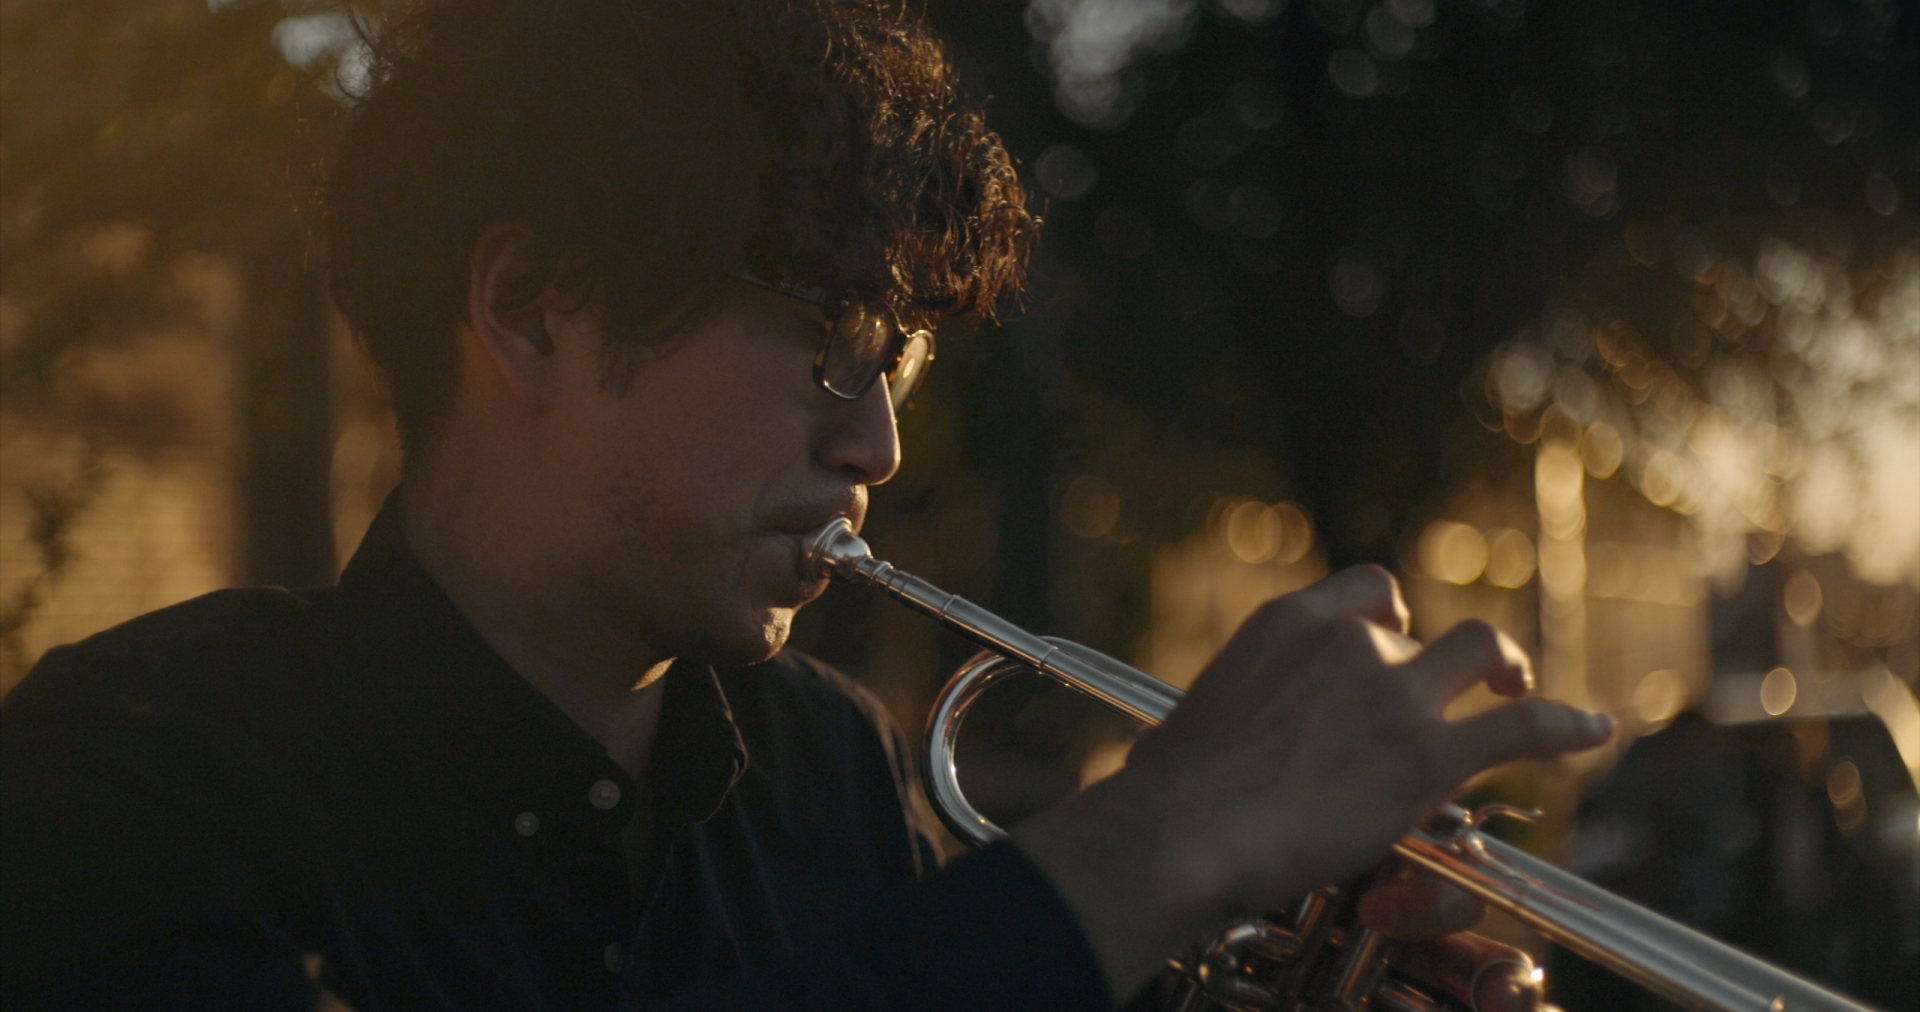 LEANDRO MONTI / DIRECTOR OF PHOTOGRAPHY TRUMPET